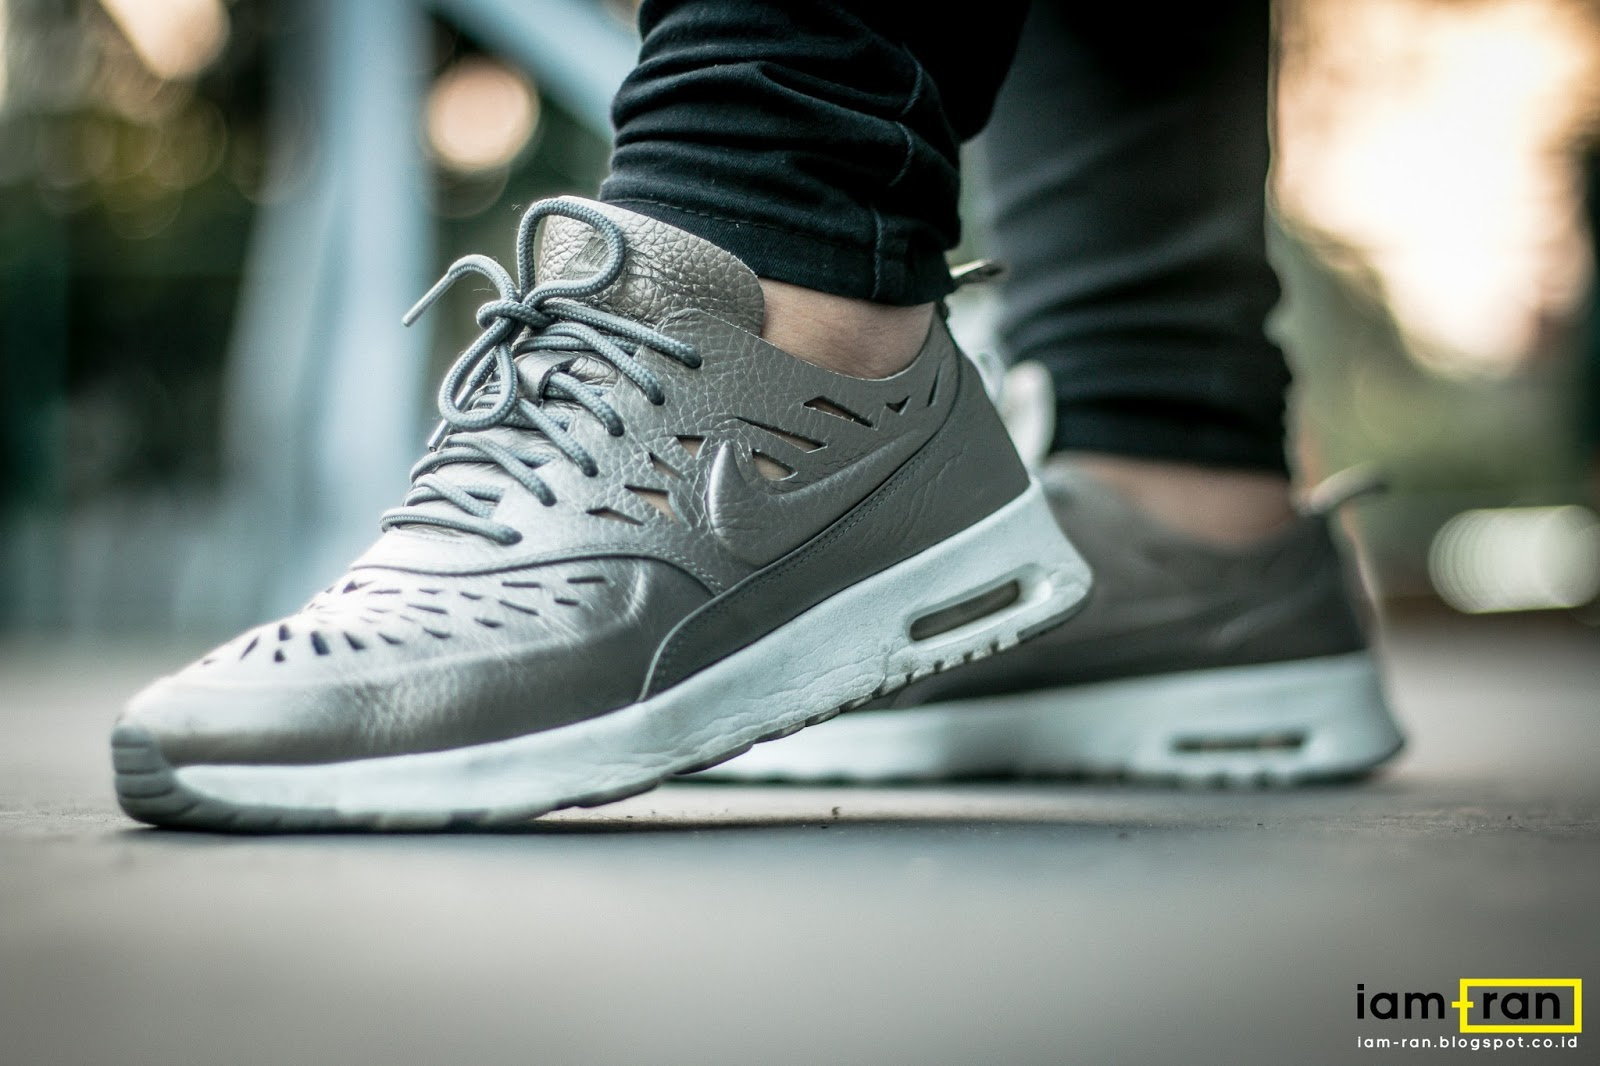 a0d516e41b6d24 IAM-RAN  ON FEET   Bella - Nike Air Max Thea Cut Out